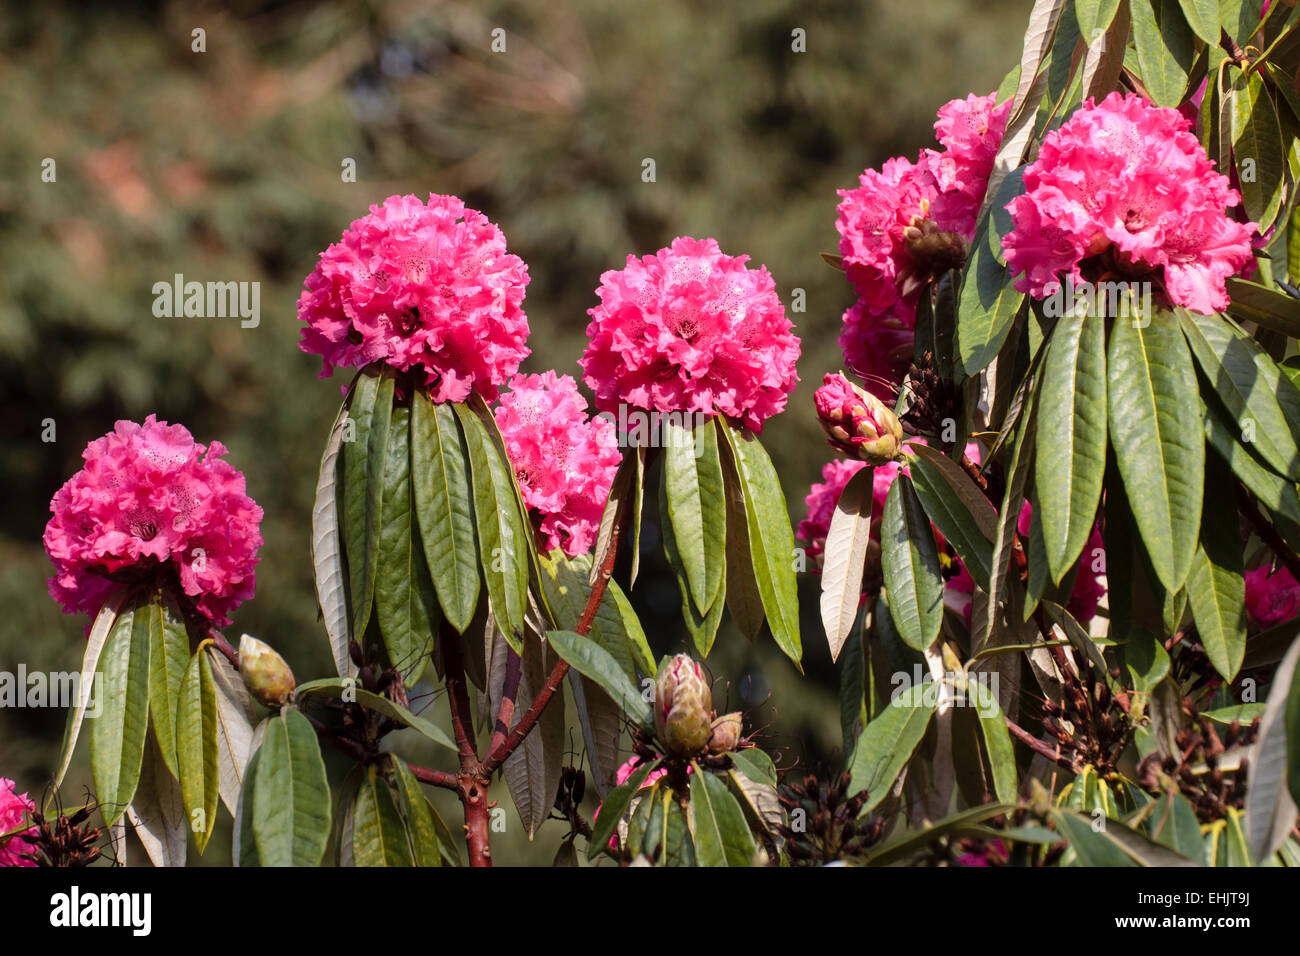 A pink form of the giant evergreen tree rhododendron, Rhododendron arboreum - Stock Image